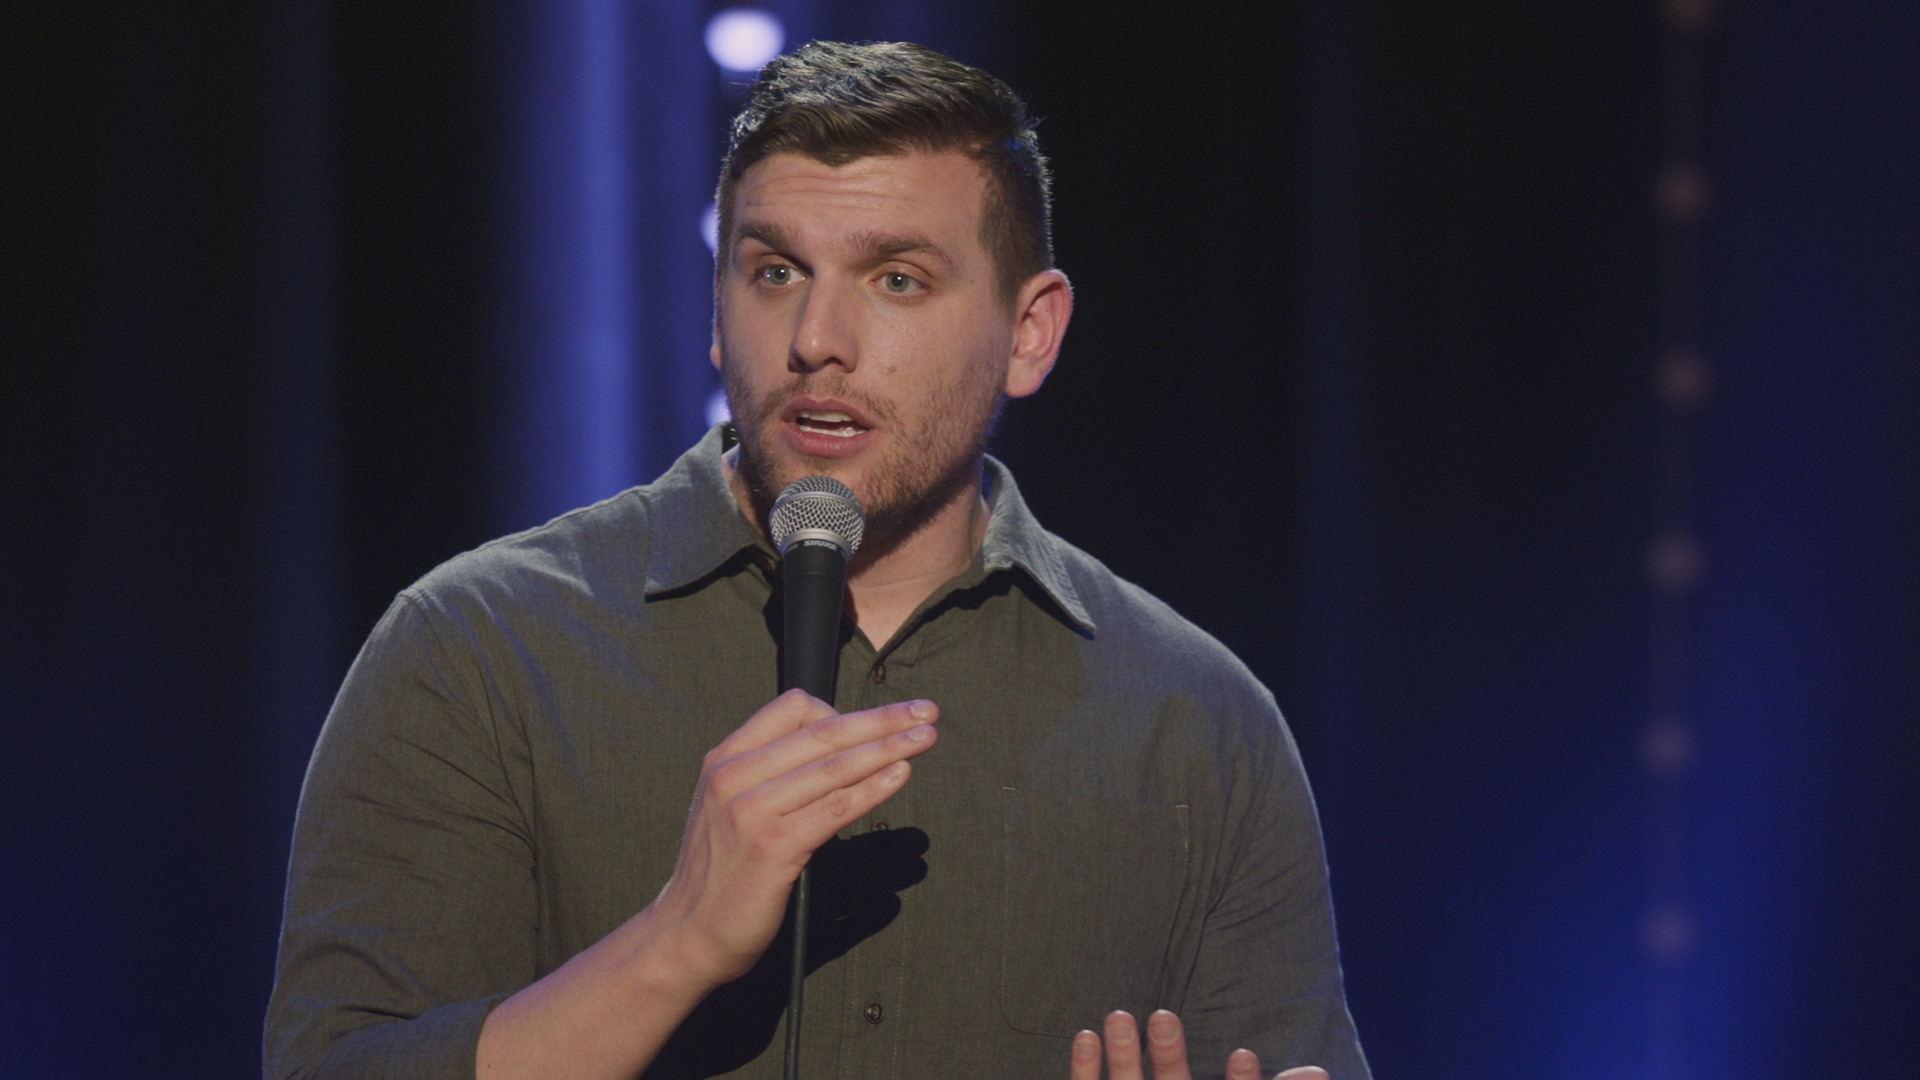 Chris Distefano: Size 38 Waist